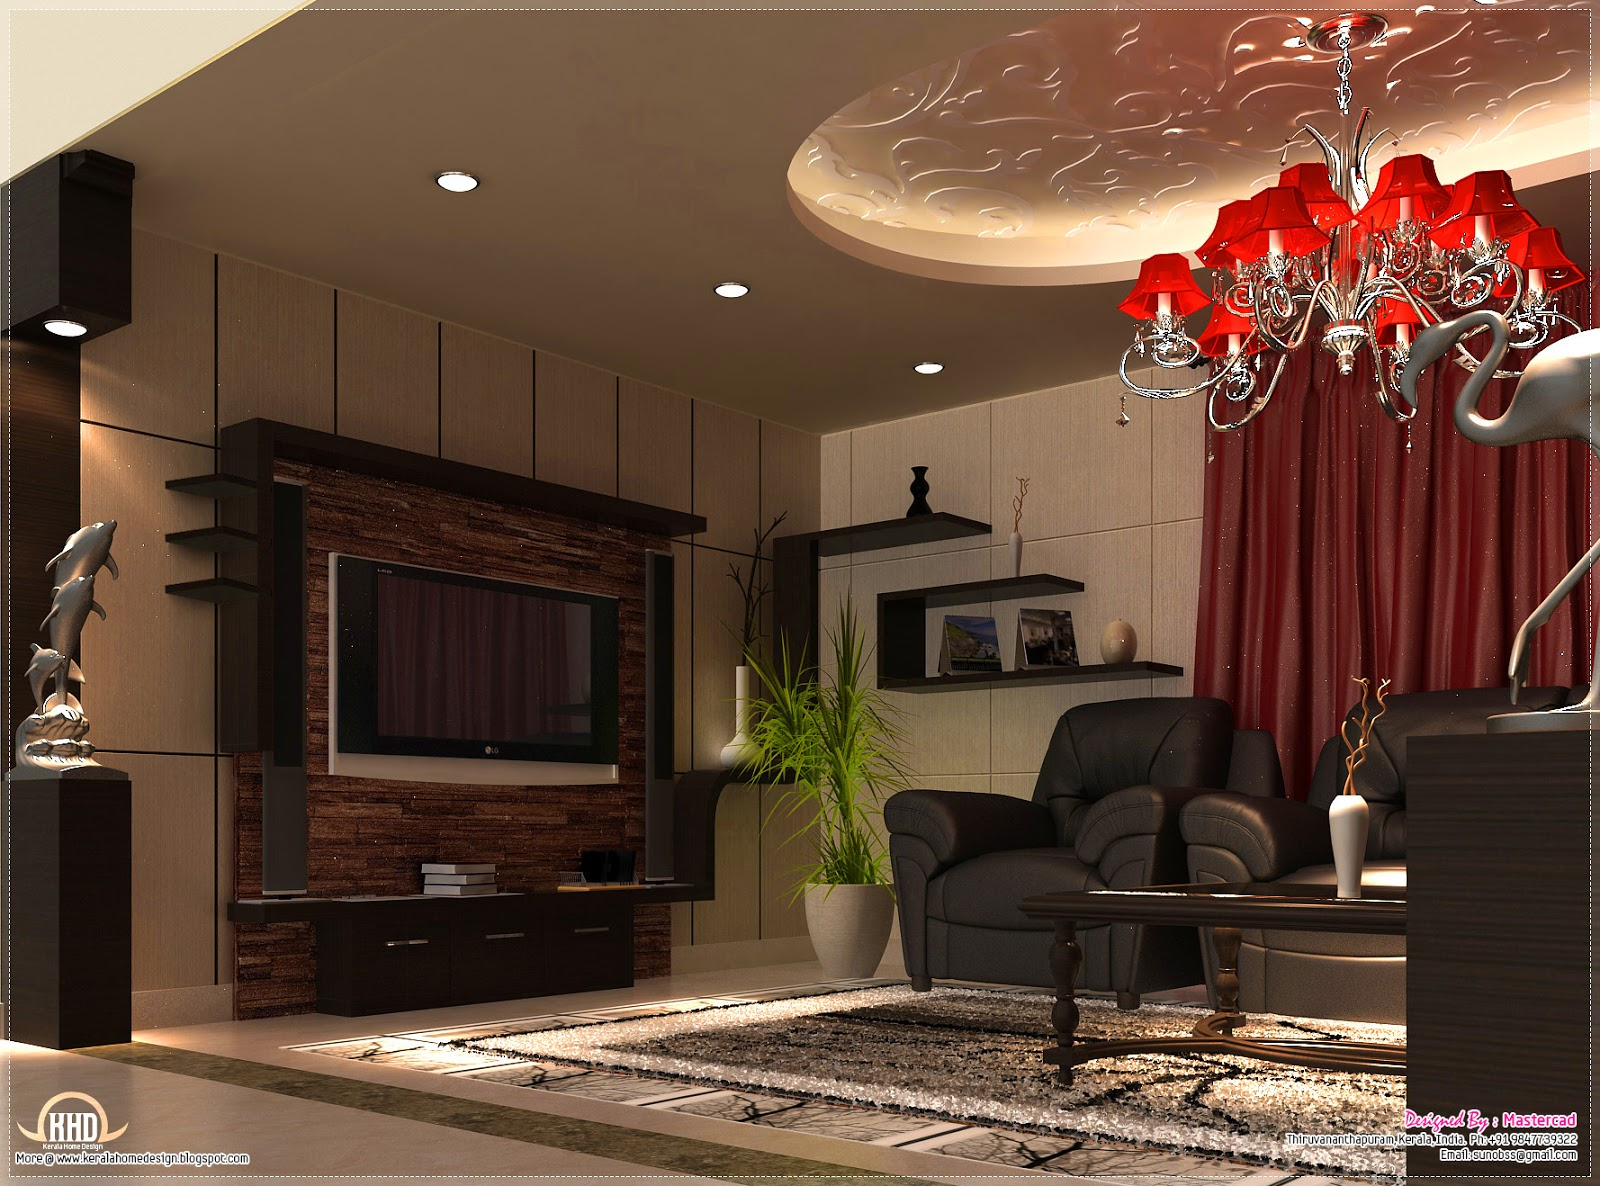 Interior design ideas kerala home design and floor plans for Living room design ideas kerala